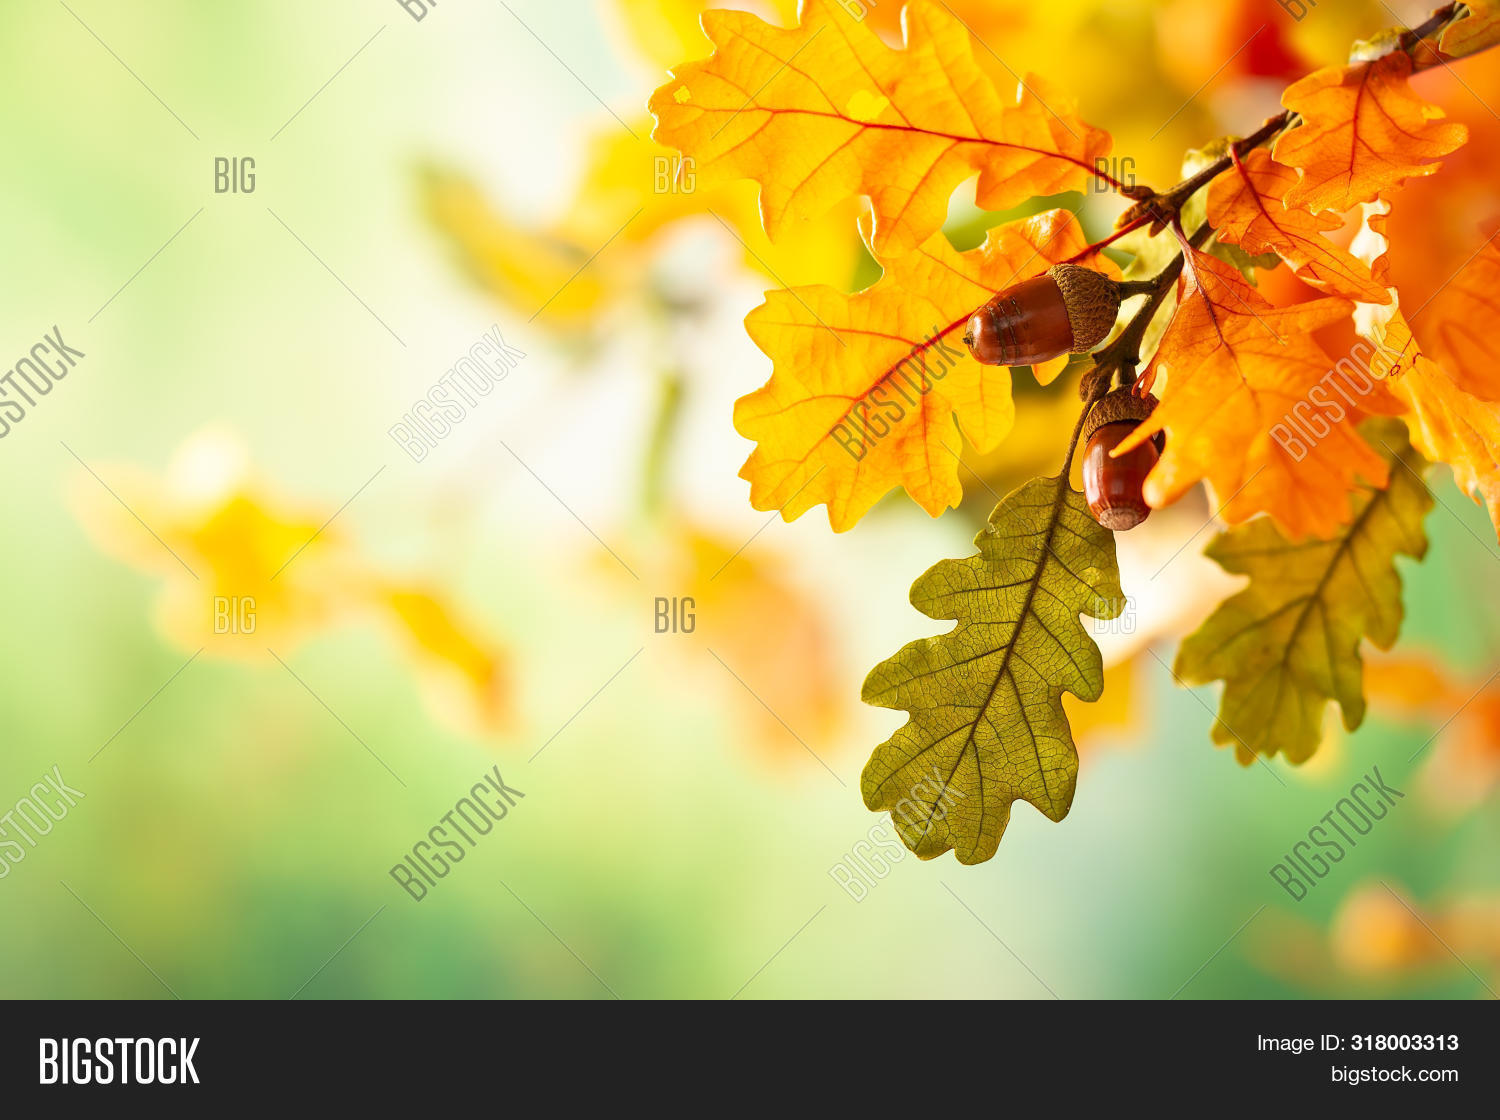 acorn,autumn,autumn leaves,autumnal background,background,beautiful,beauty,bokeh,botany,branch,bright,celebration,colorful,composition,concept,day,decor,design,fall,falling leaves,festive,foliage,forest,garden,green,halloween,harvest,holiday,landscape,leaf,leaves,nature,november,oak,october,orange,outdoor,park,plant,red,season,seasonal,sun,sunlight,thanksgiving,traditional,tree,trees,wood,yellow